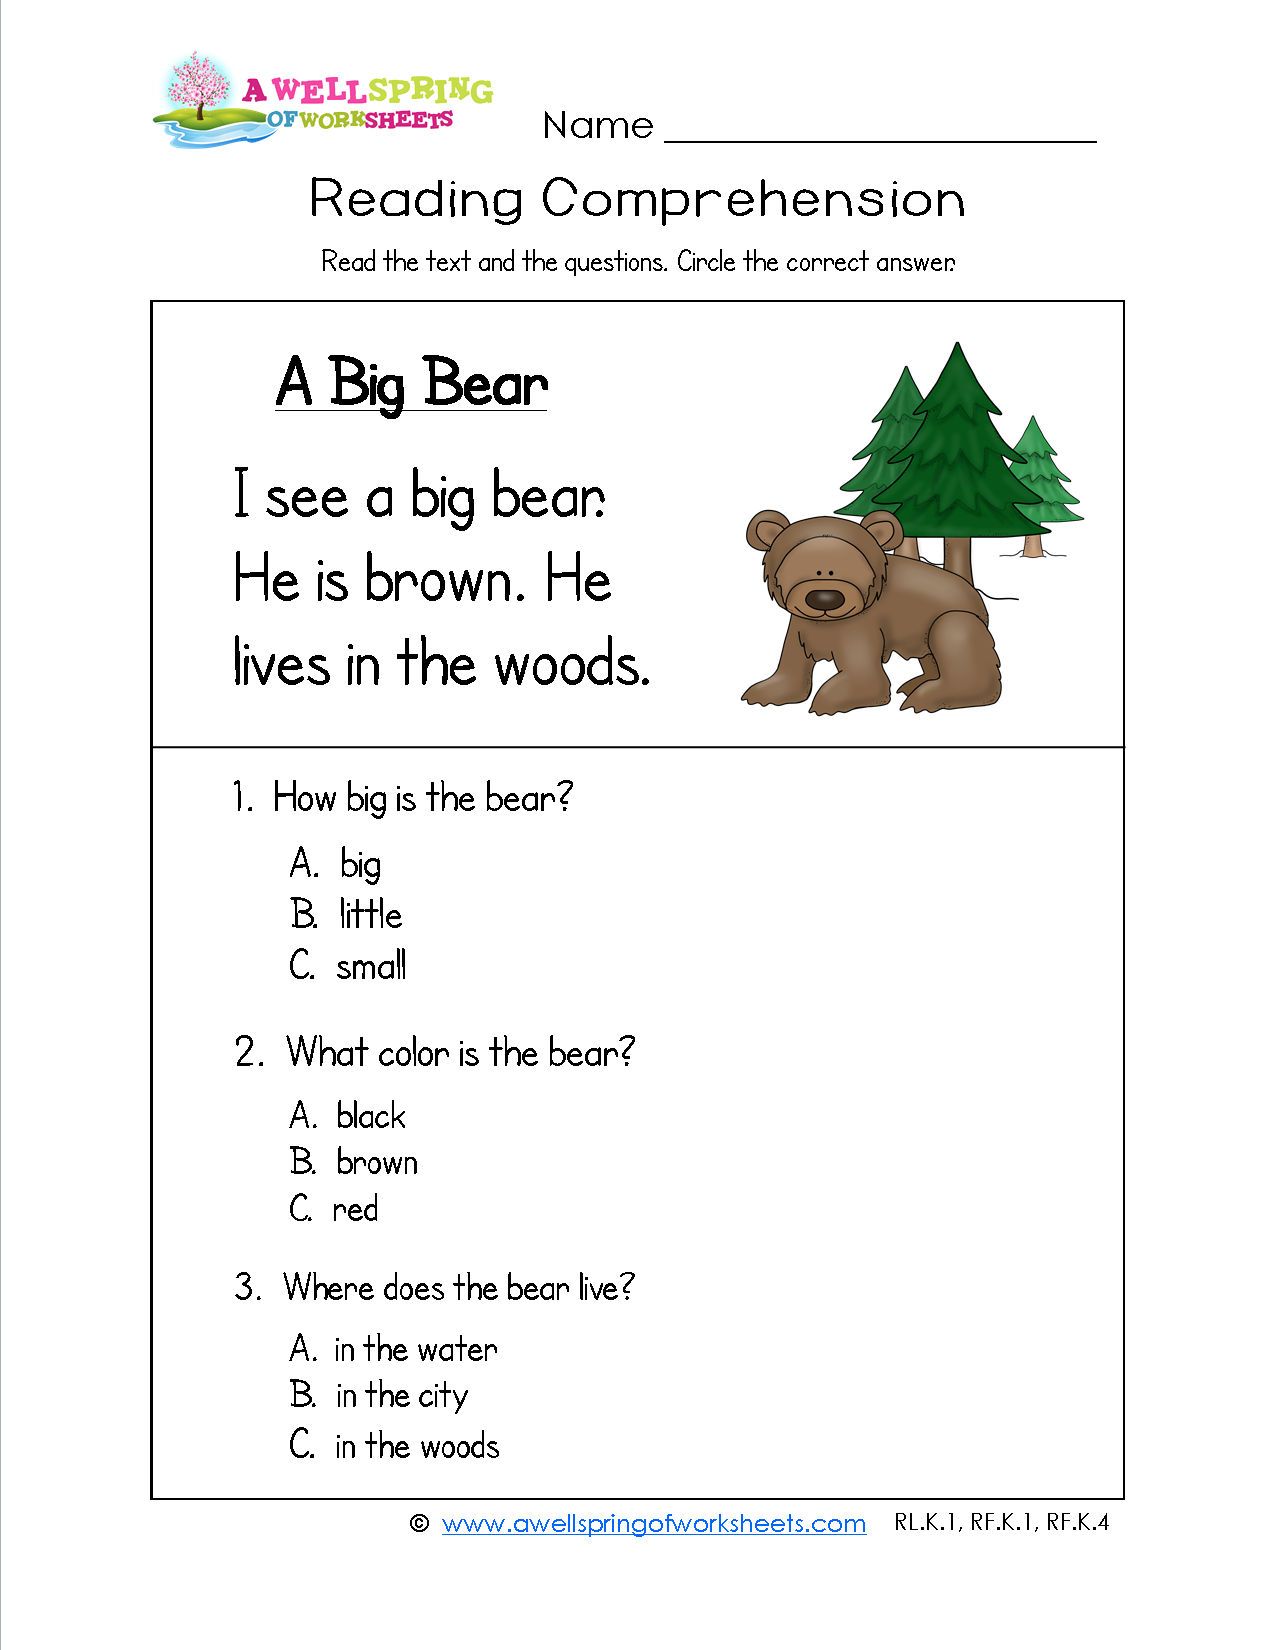 Reading Comprehension Worksheets For 1st Grade